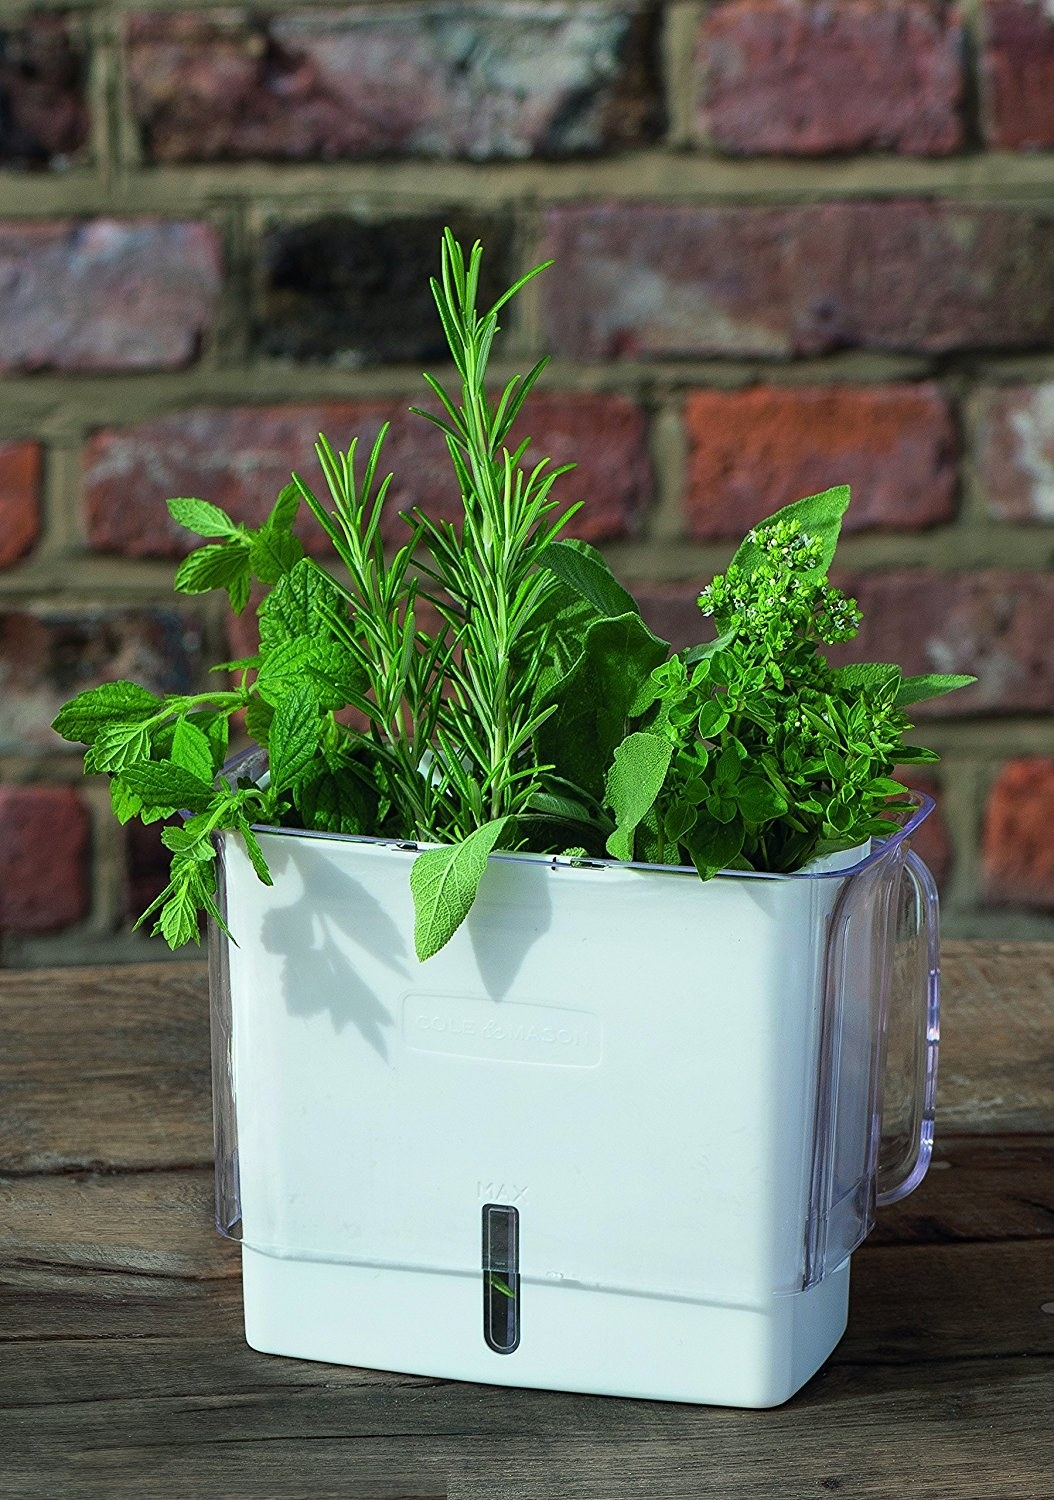 The rectangular product, with a white square base, a window for monitoring water levels, and a clear plastic part that slides up to help protect the herbs